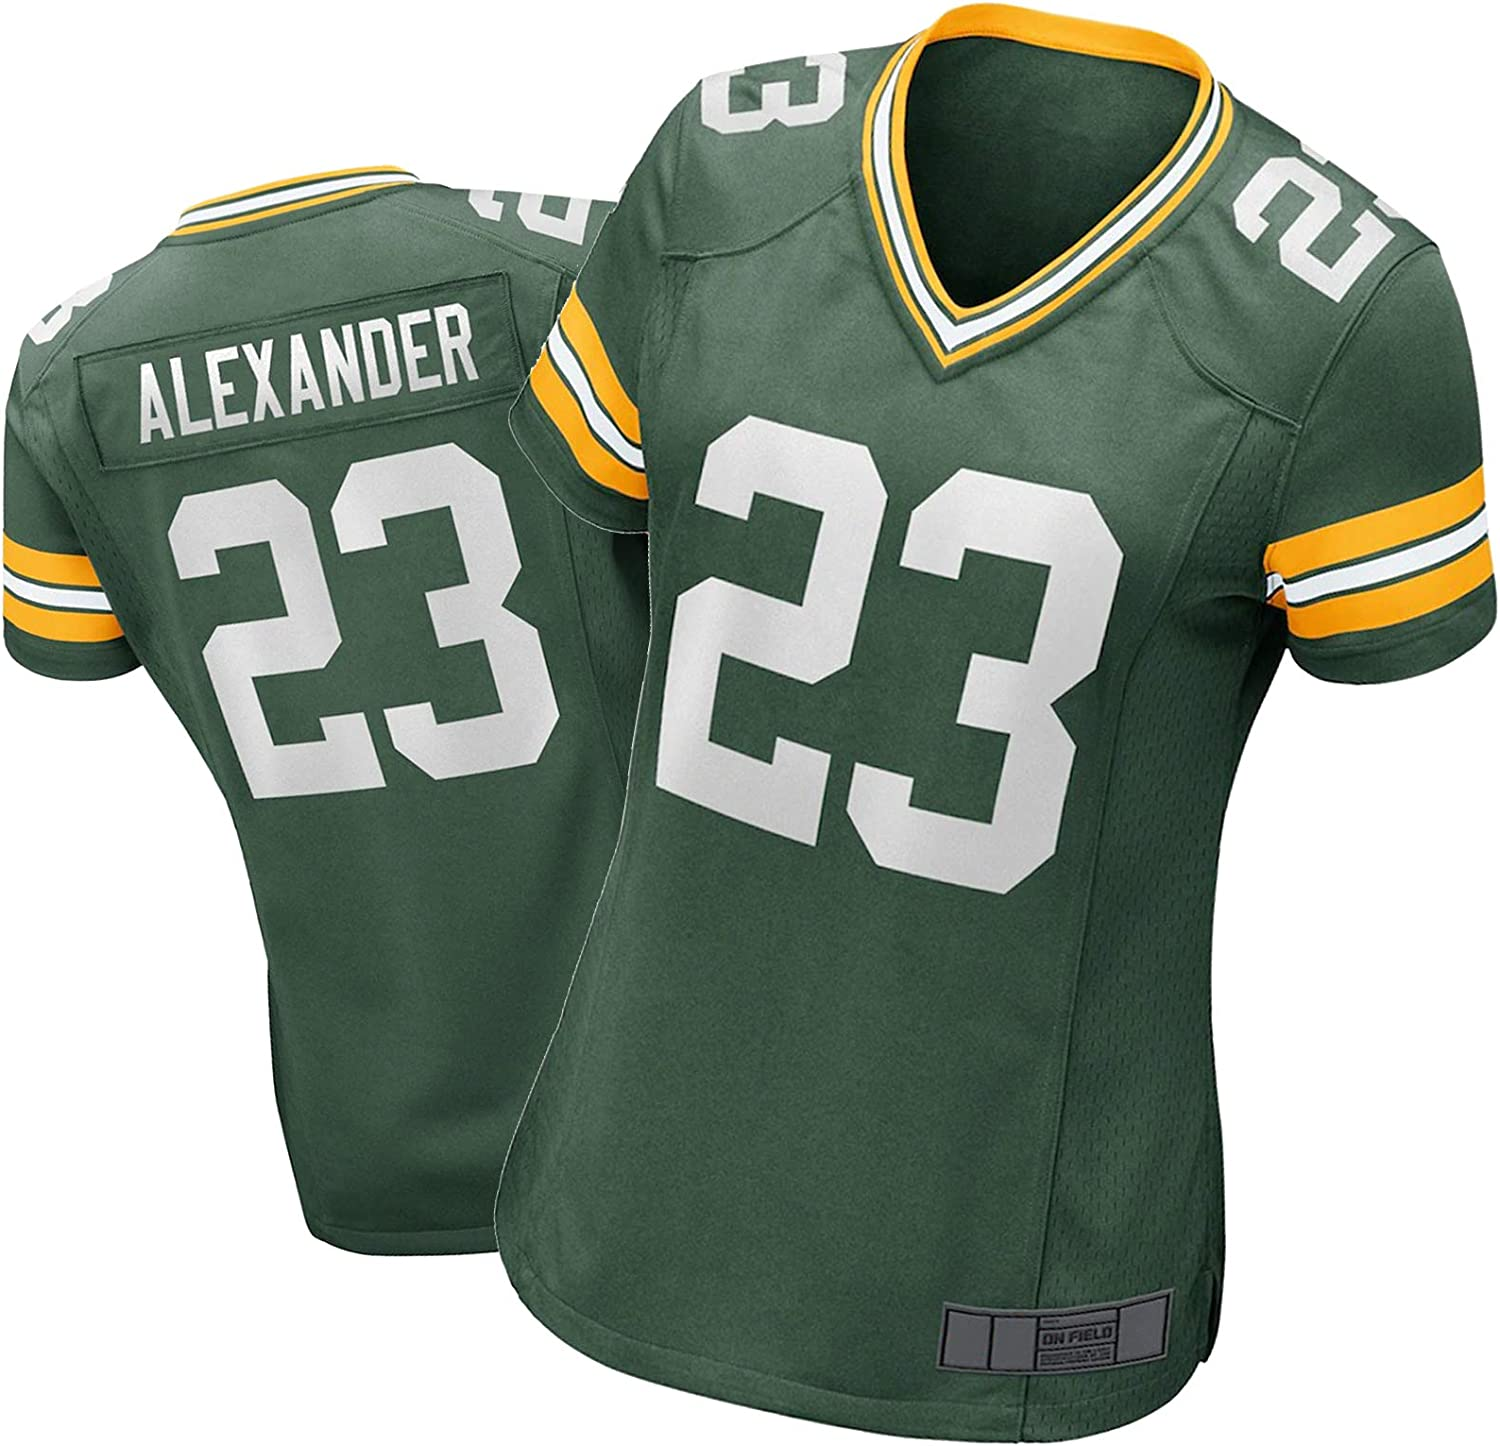 NCGD Jaire Alexander Packers Jersey,Mujeres Green Bay Packers ...